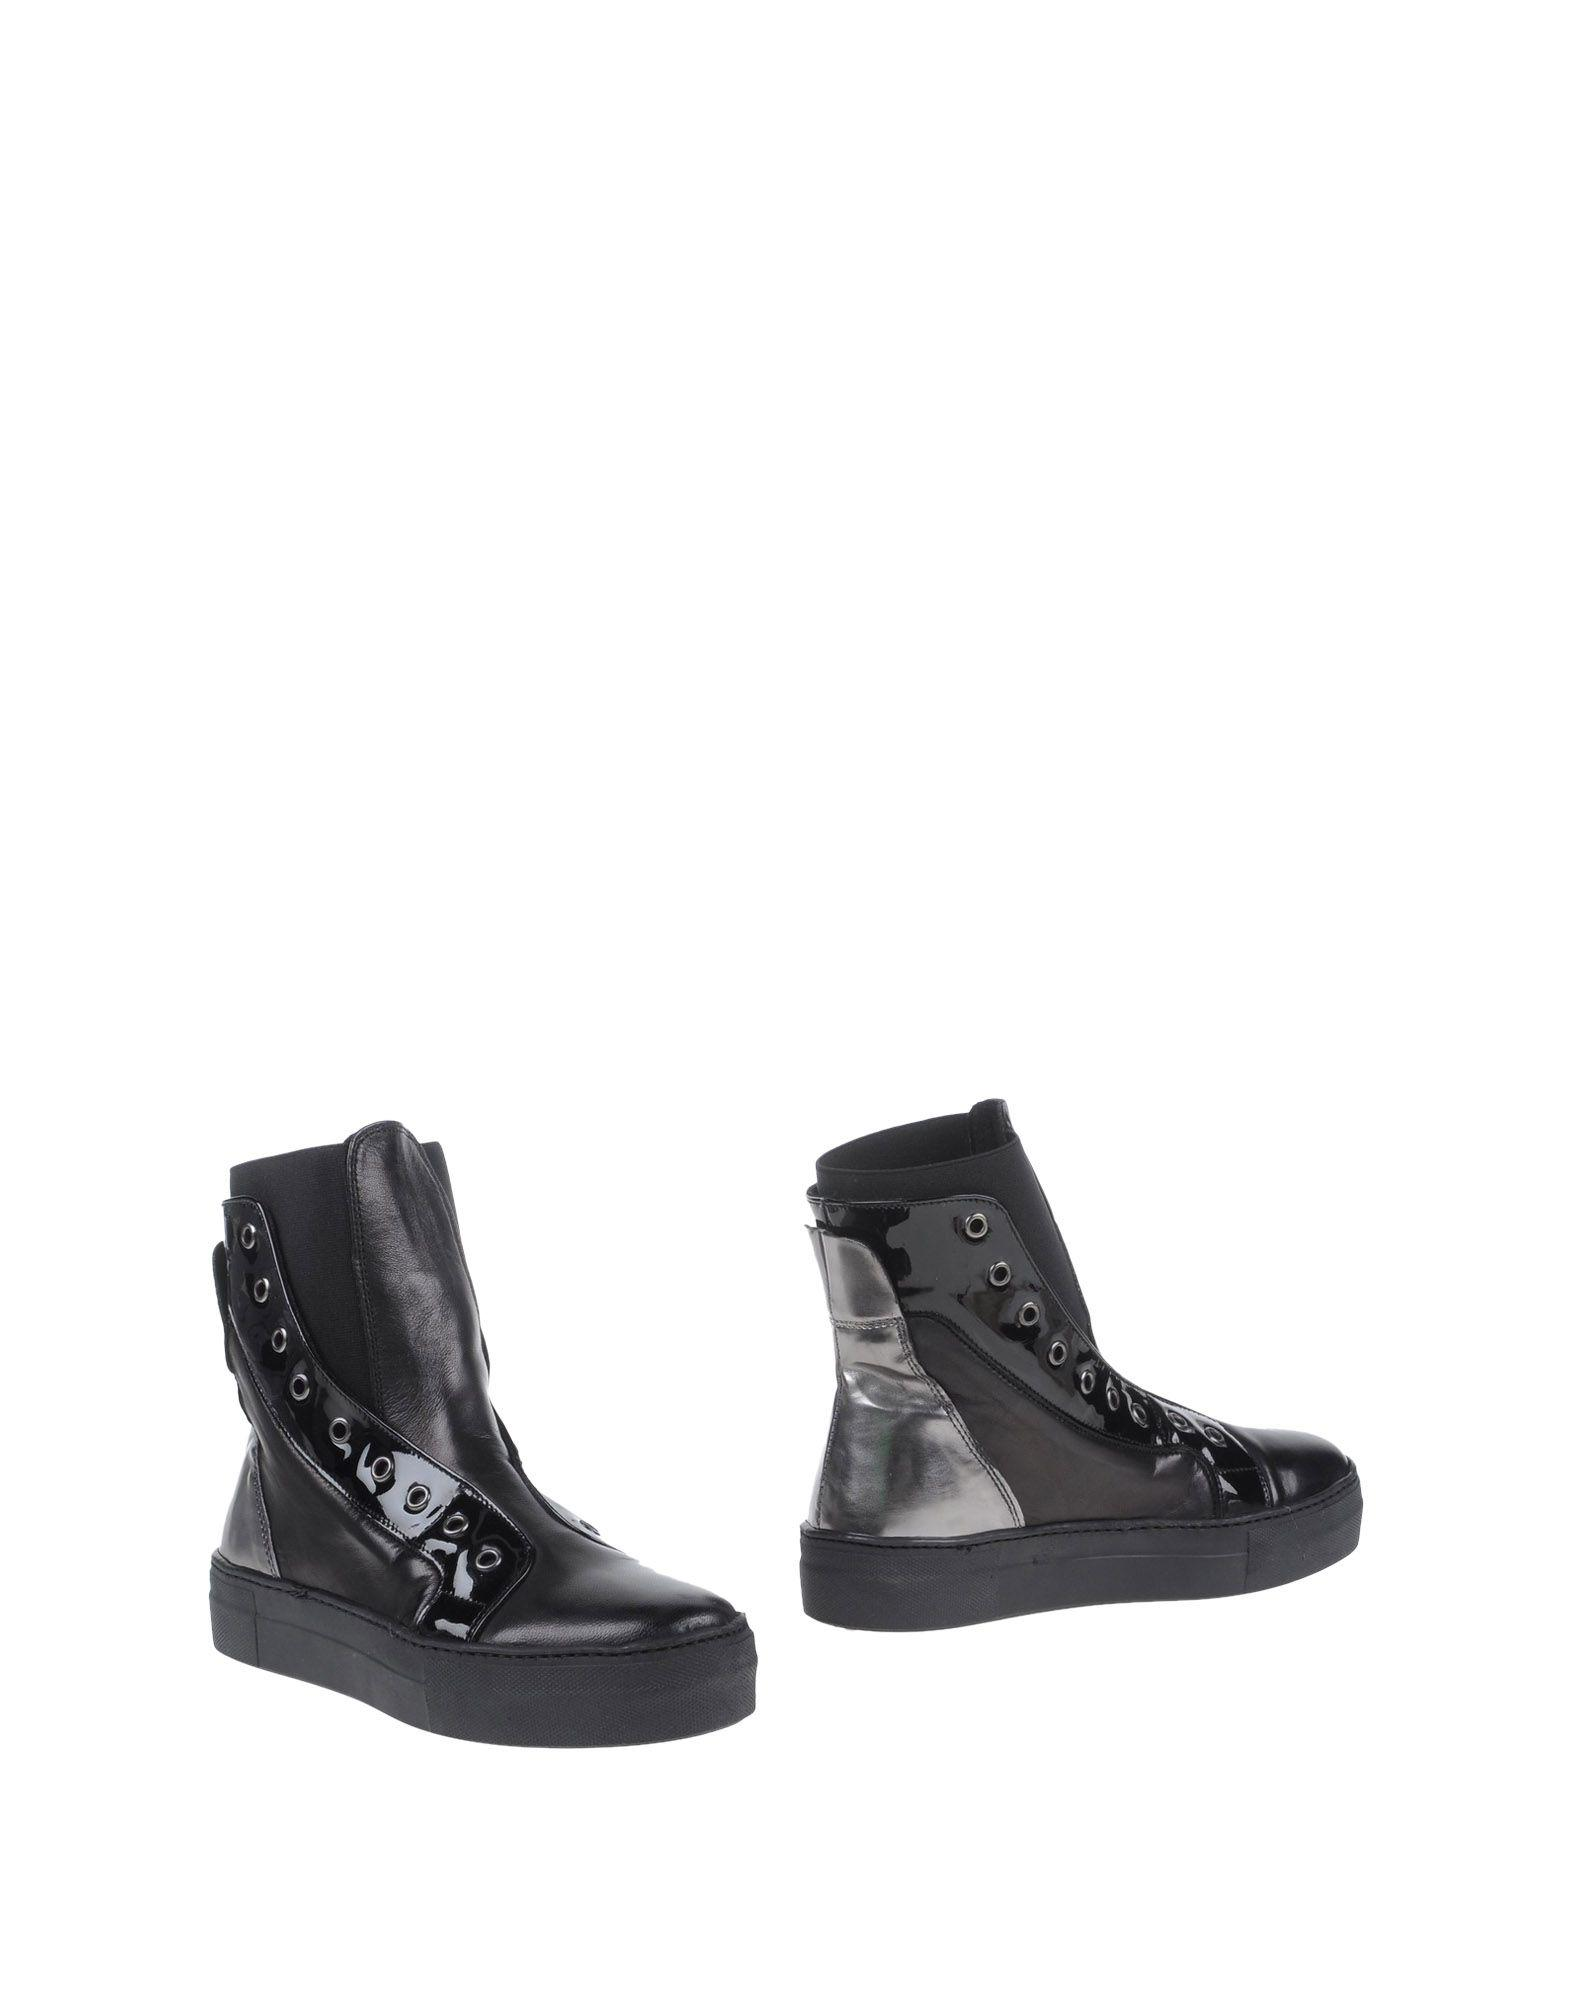 free shipping cheap online cheap sale 2015 new LEA FOSCATI Ankle boots discount amazing price zoy6bYJ